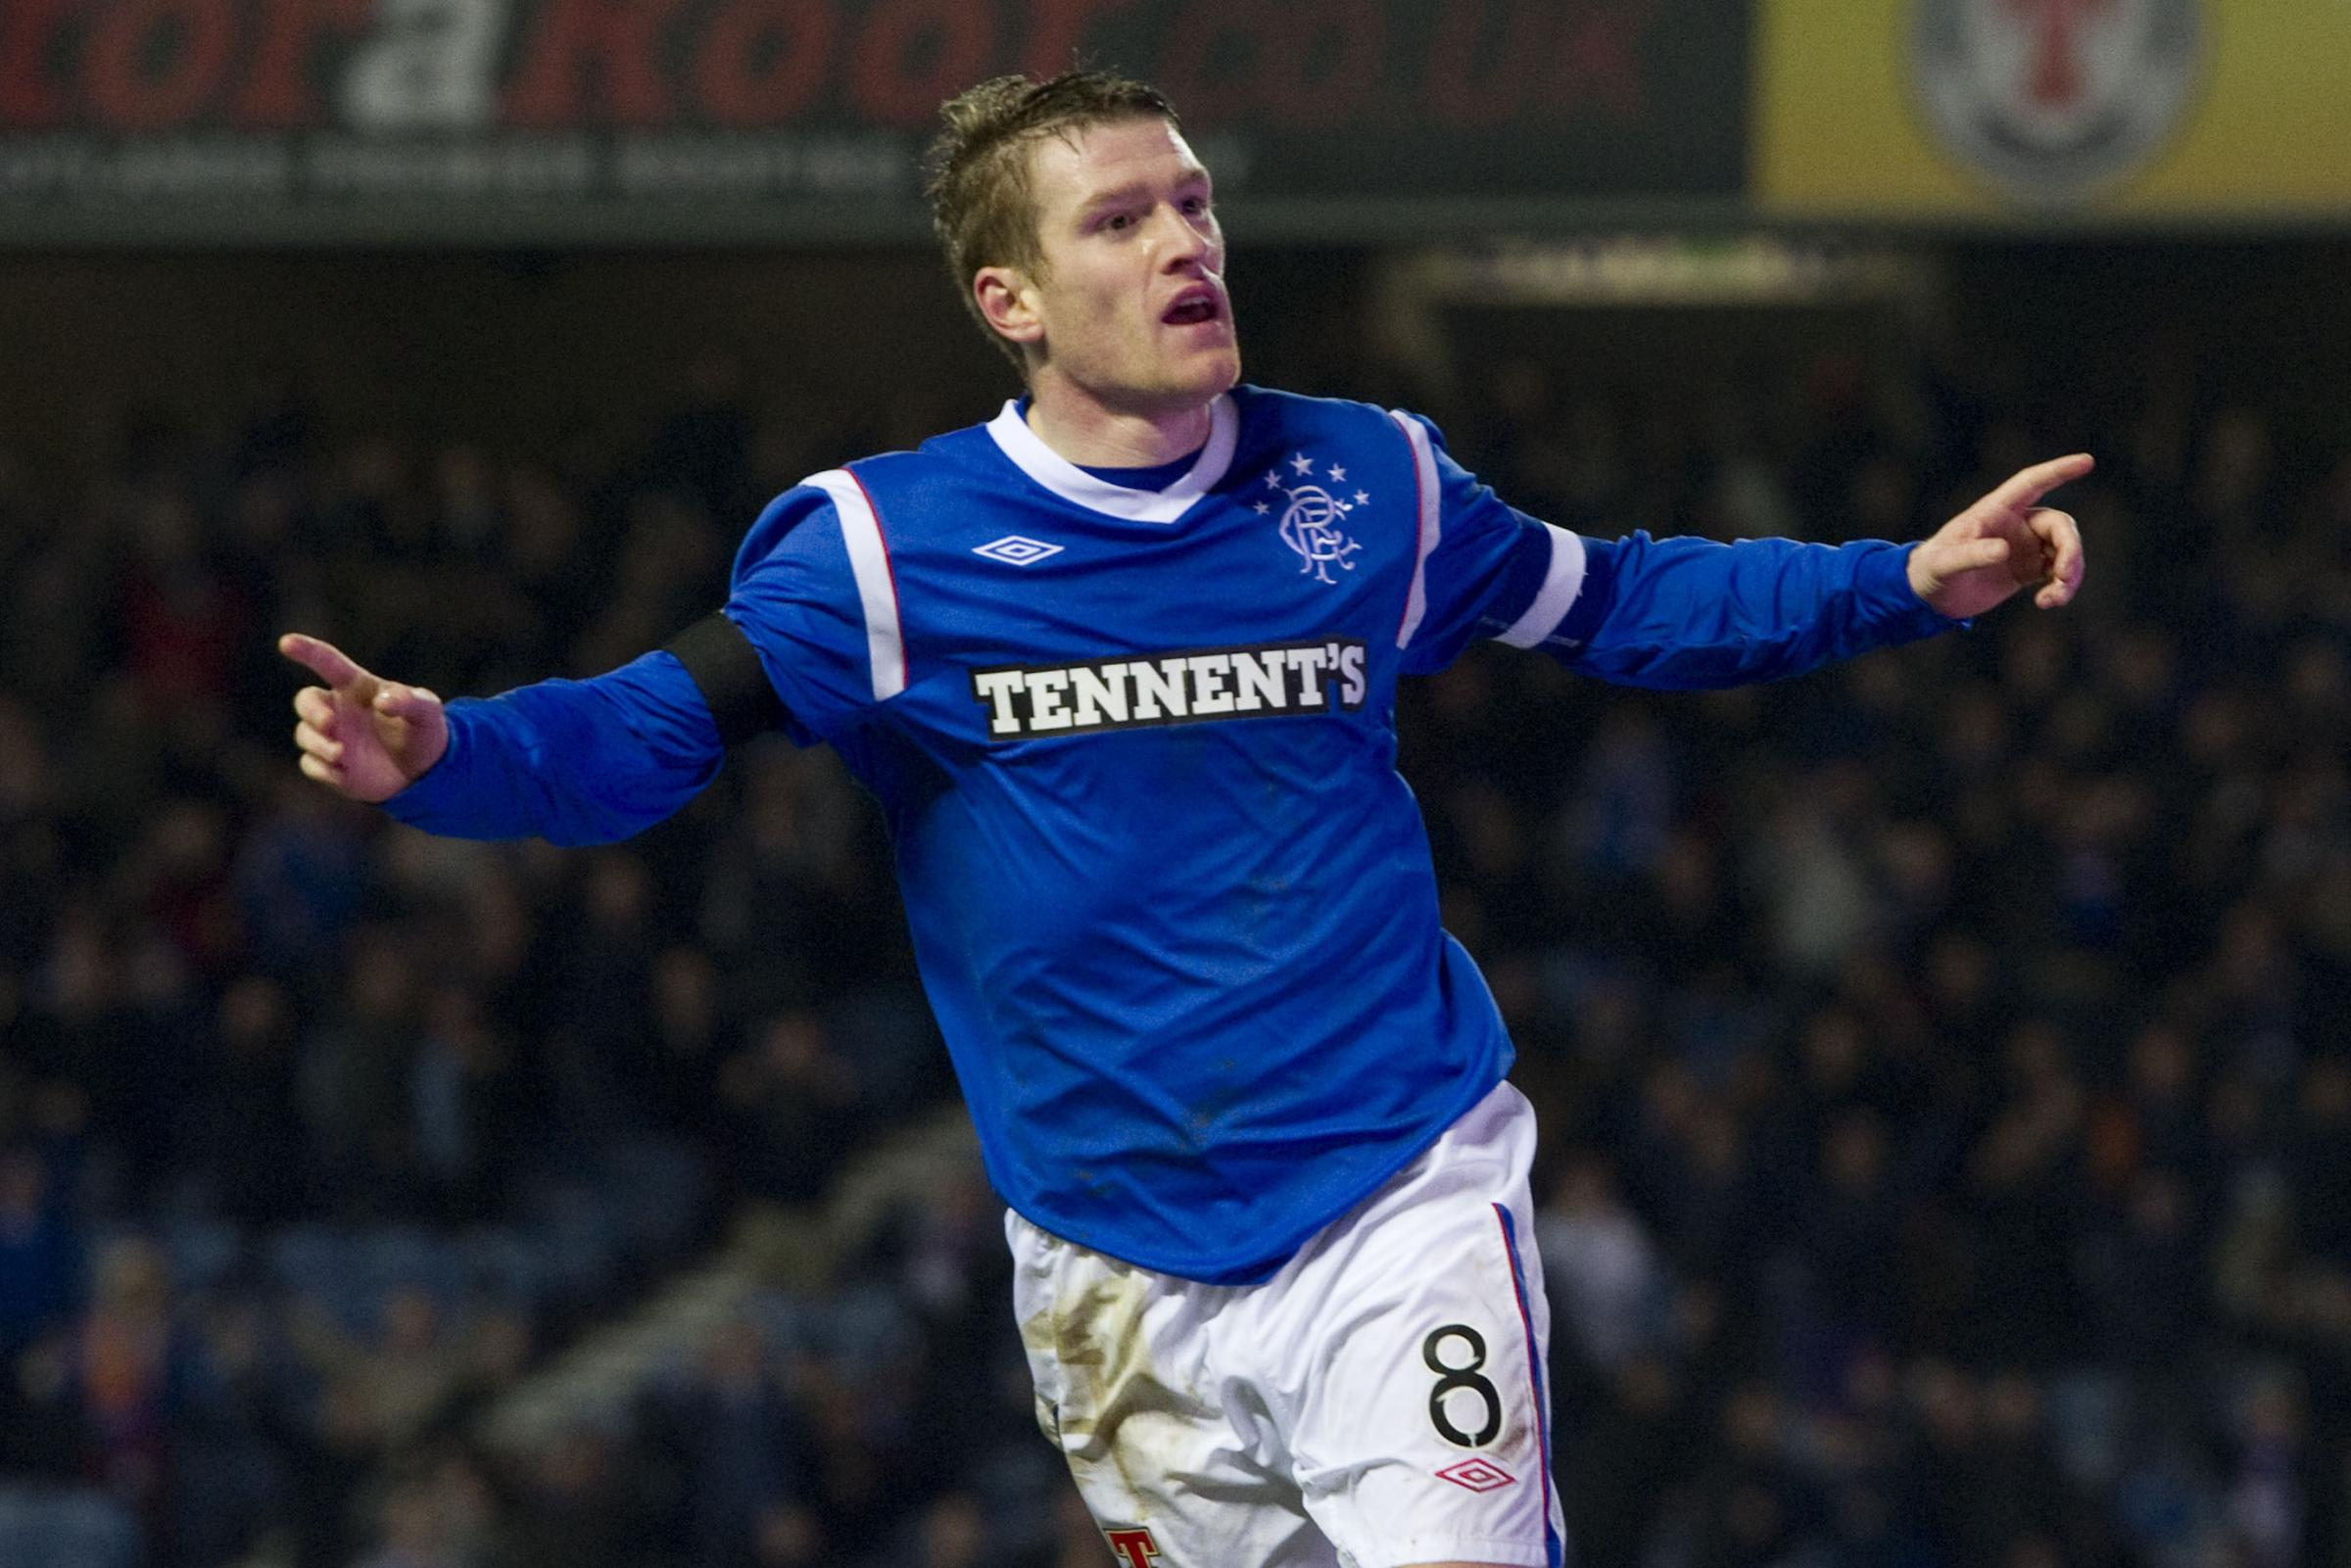 Steven Davis excited at chance to work with Steven Gerrard as he targets extended Ibrox stint